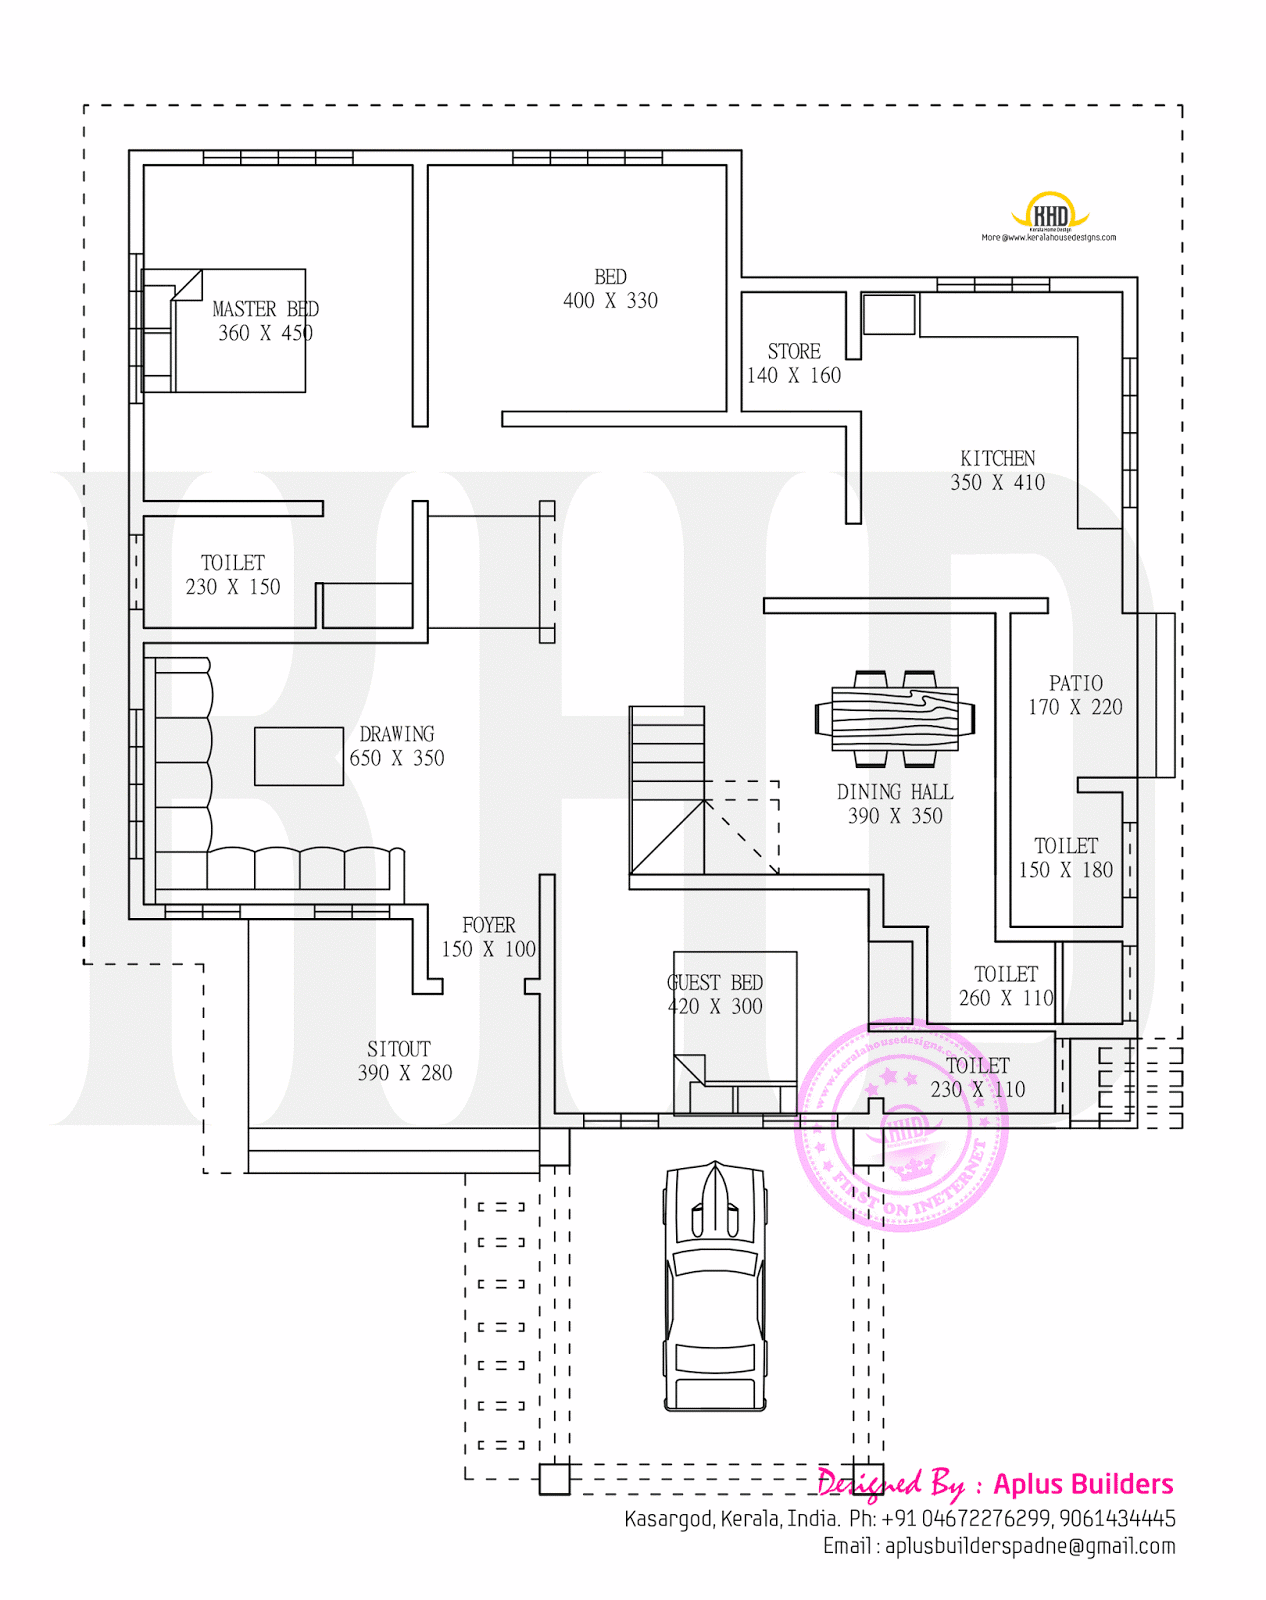 Elevation And Floor Plan : Floor plan and elevation by aplus builders kerala home